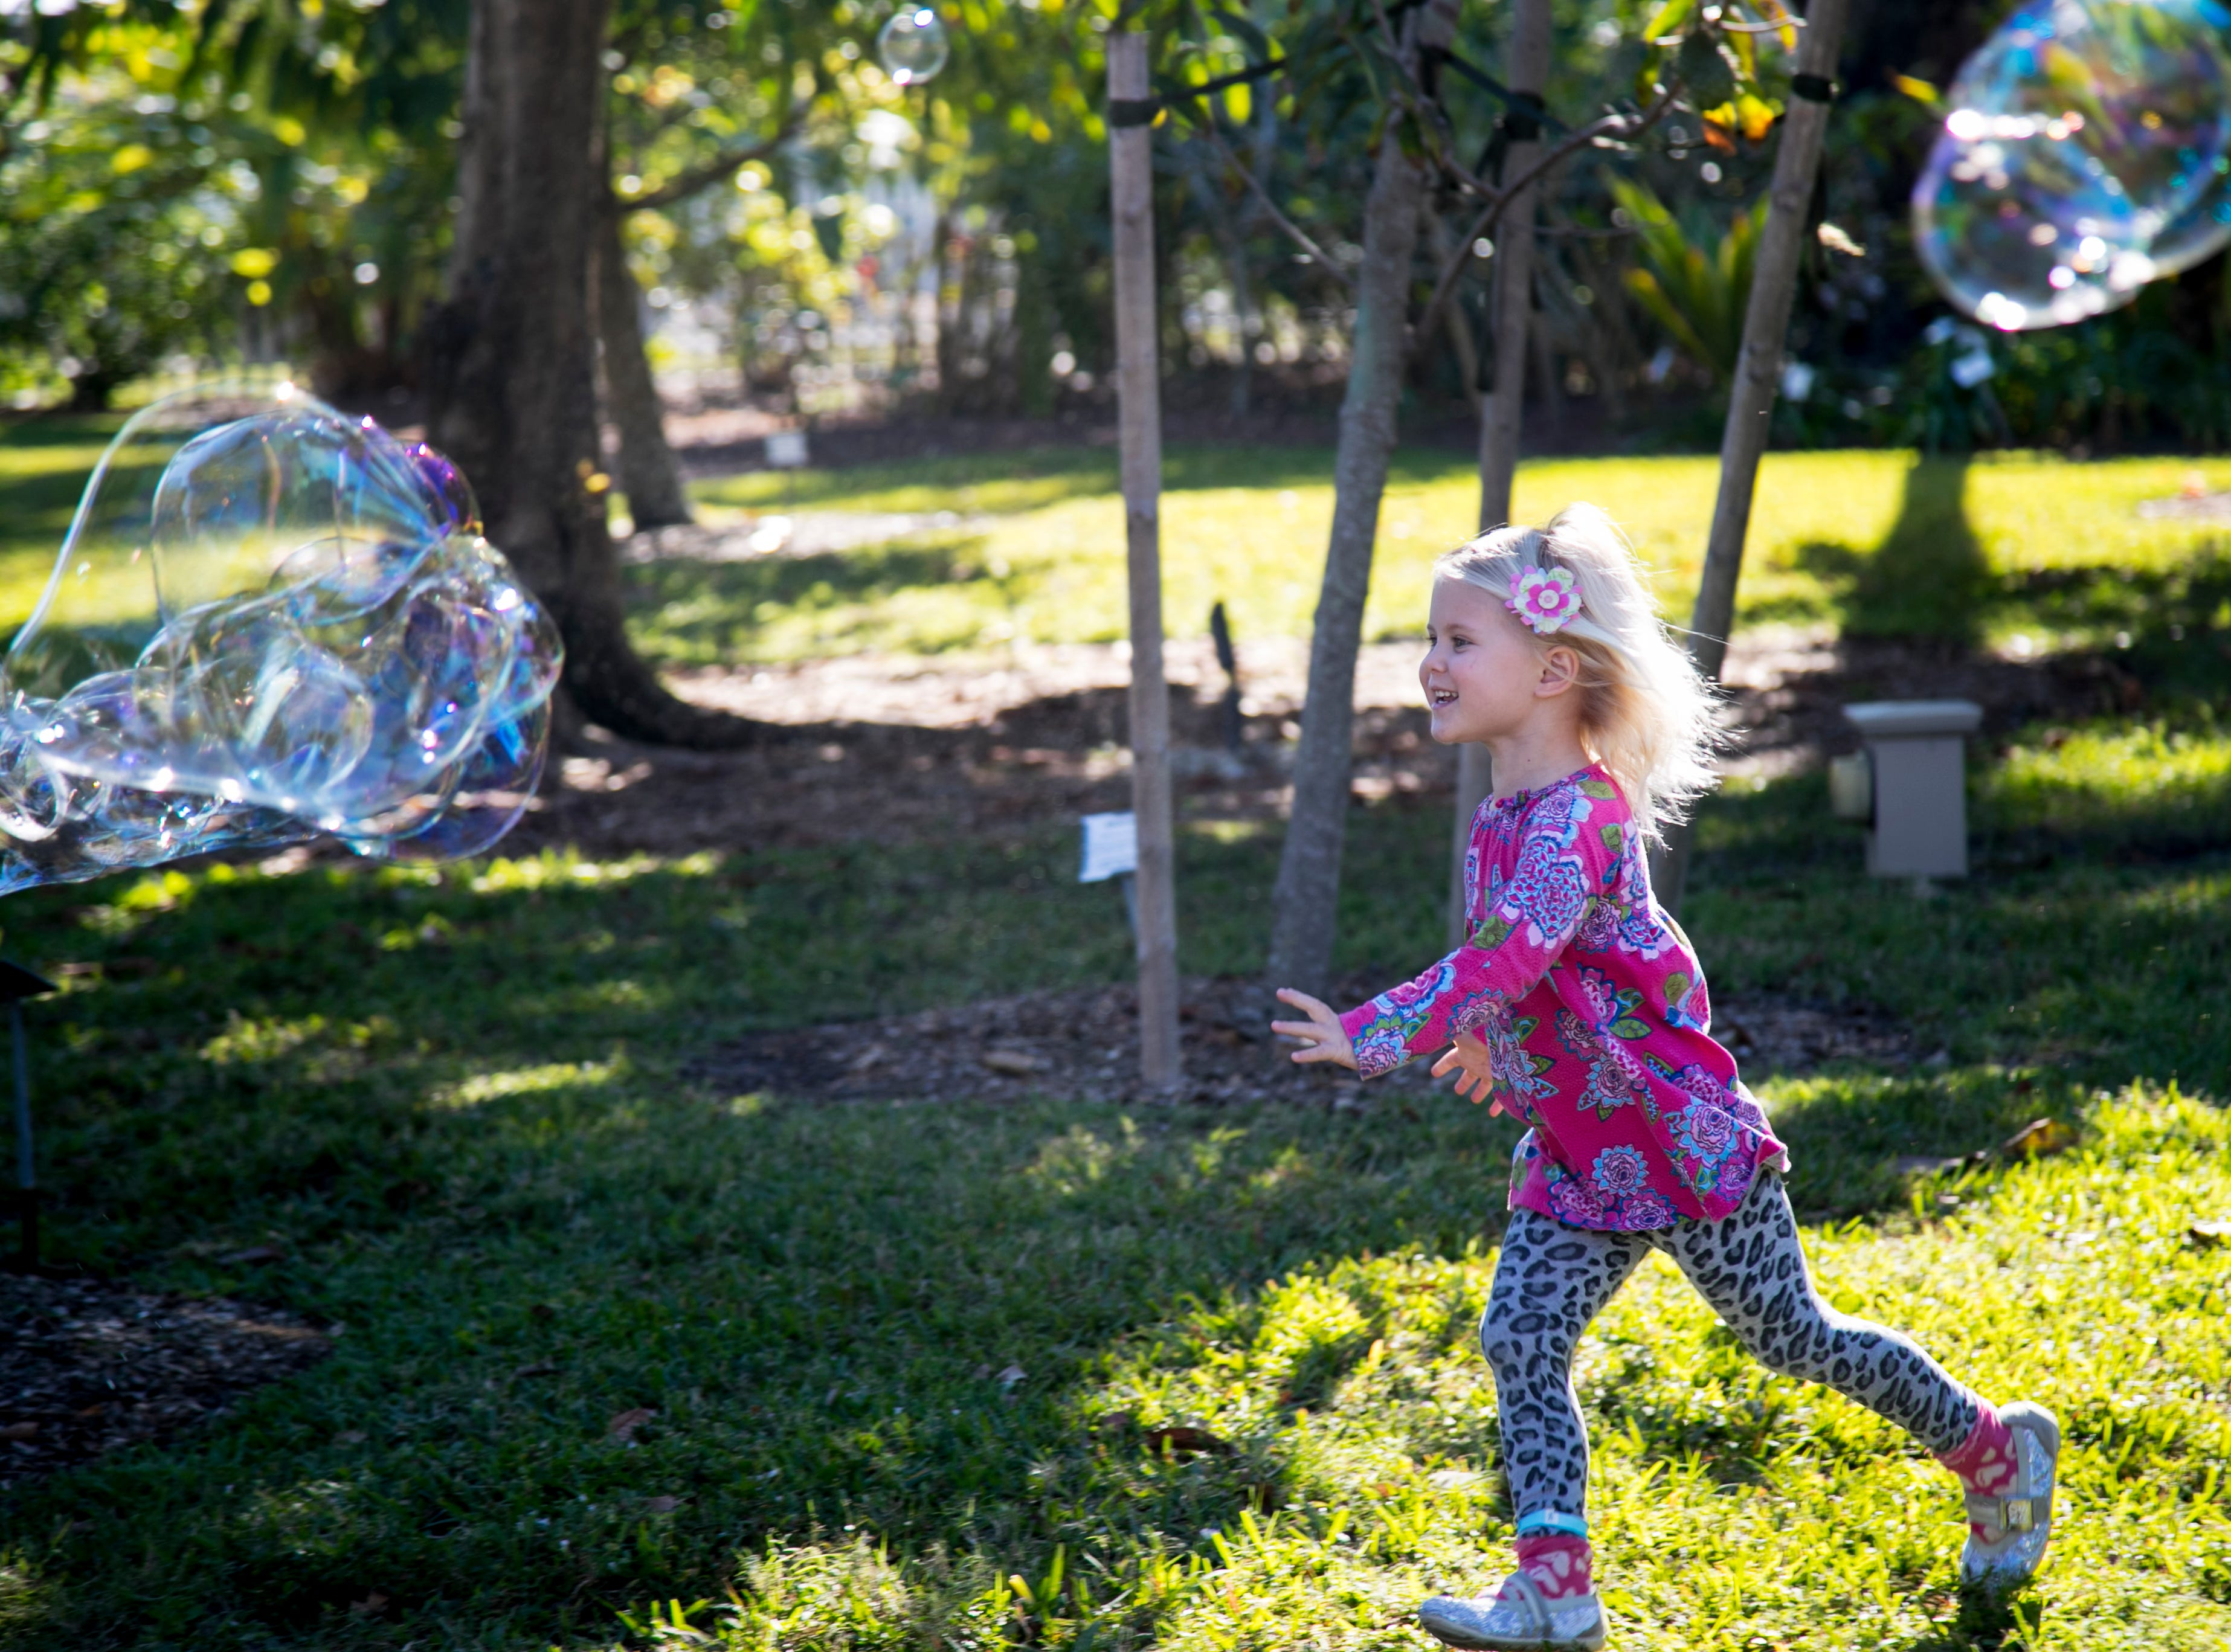 Stella Curry, 3, chases giant bubbles during the monthly Emerging Inventors program on Thursday, January 17, 2019, at the Edison & Ford Winter Estates in Fort Myers. This month's program was called Bouncing Bubbles, and children got to make their own bubble wands.